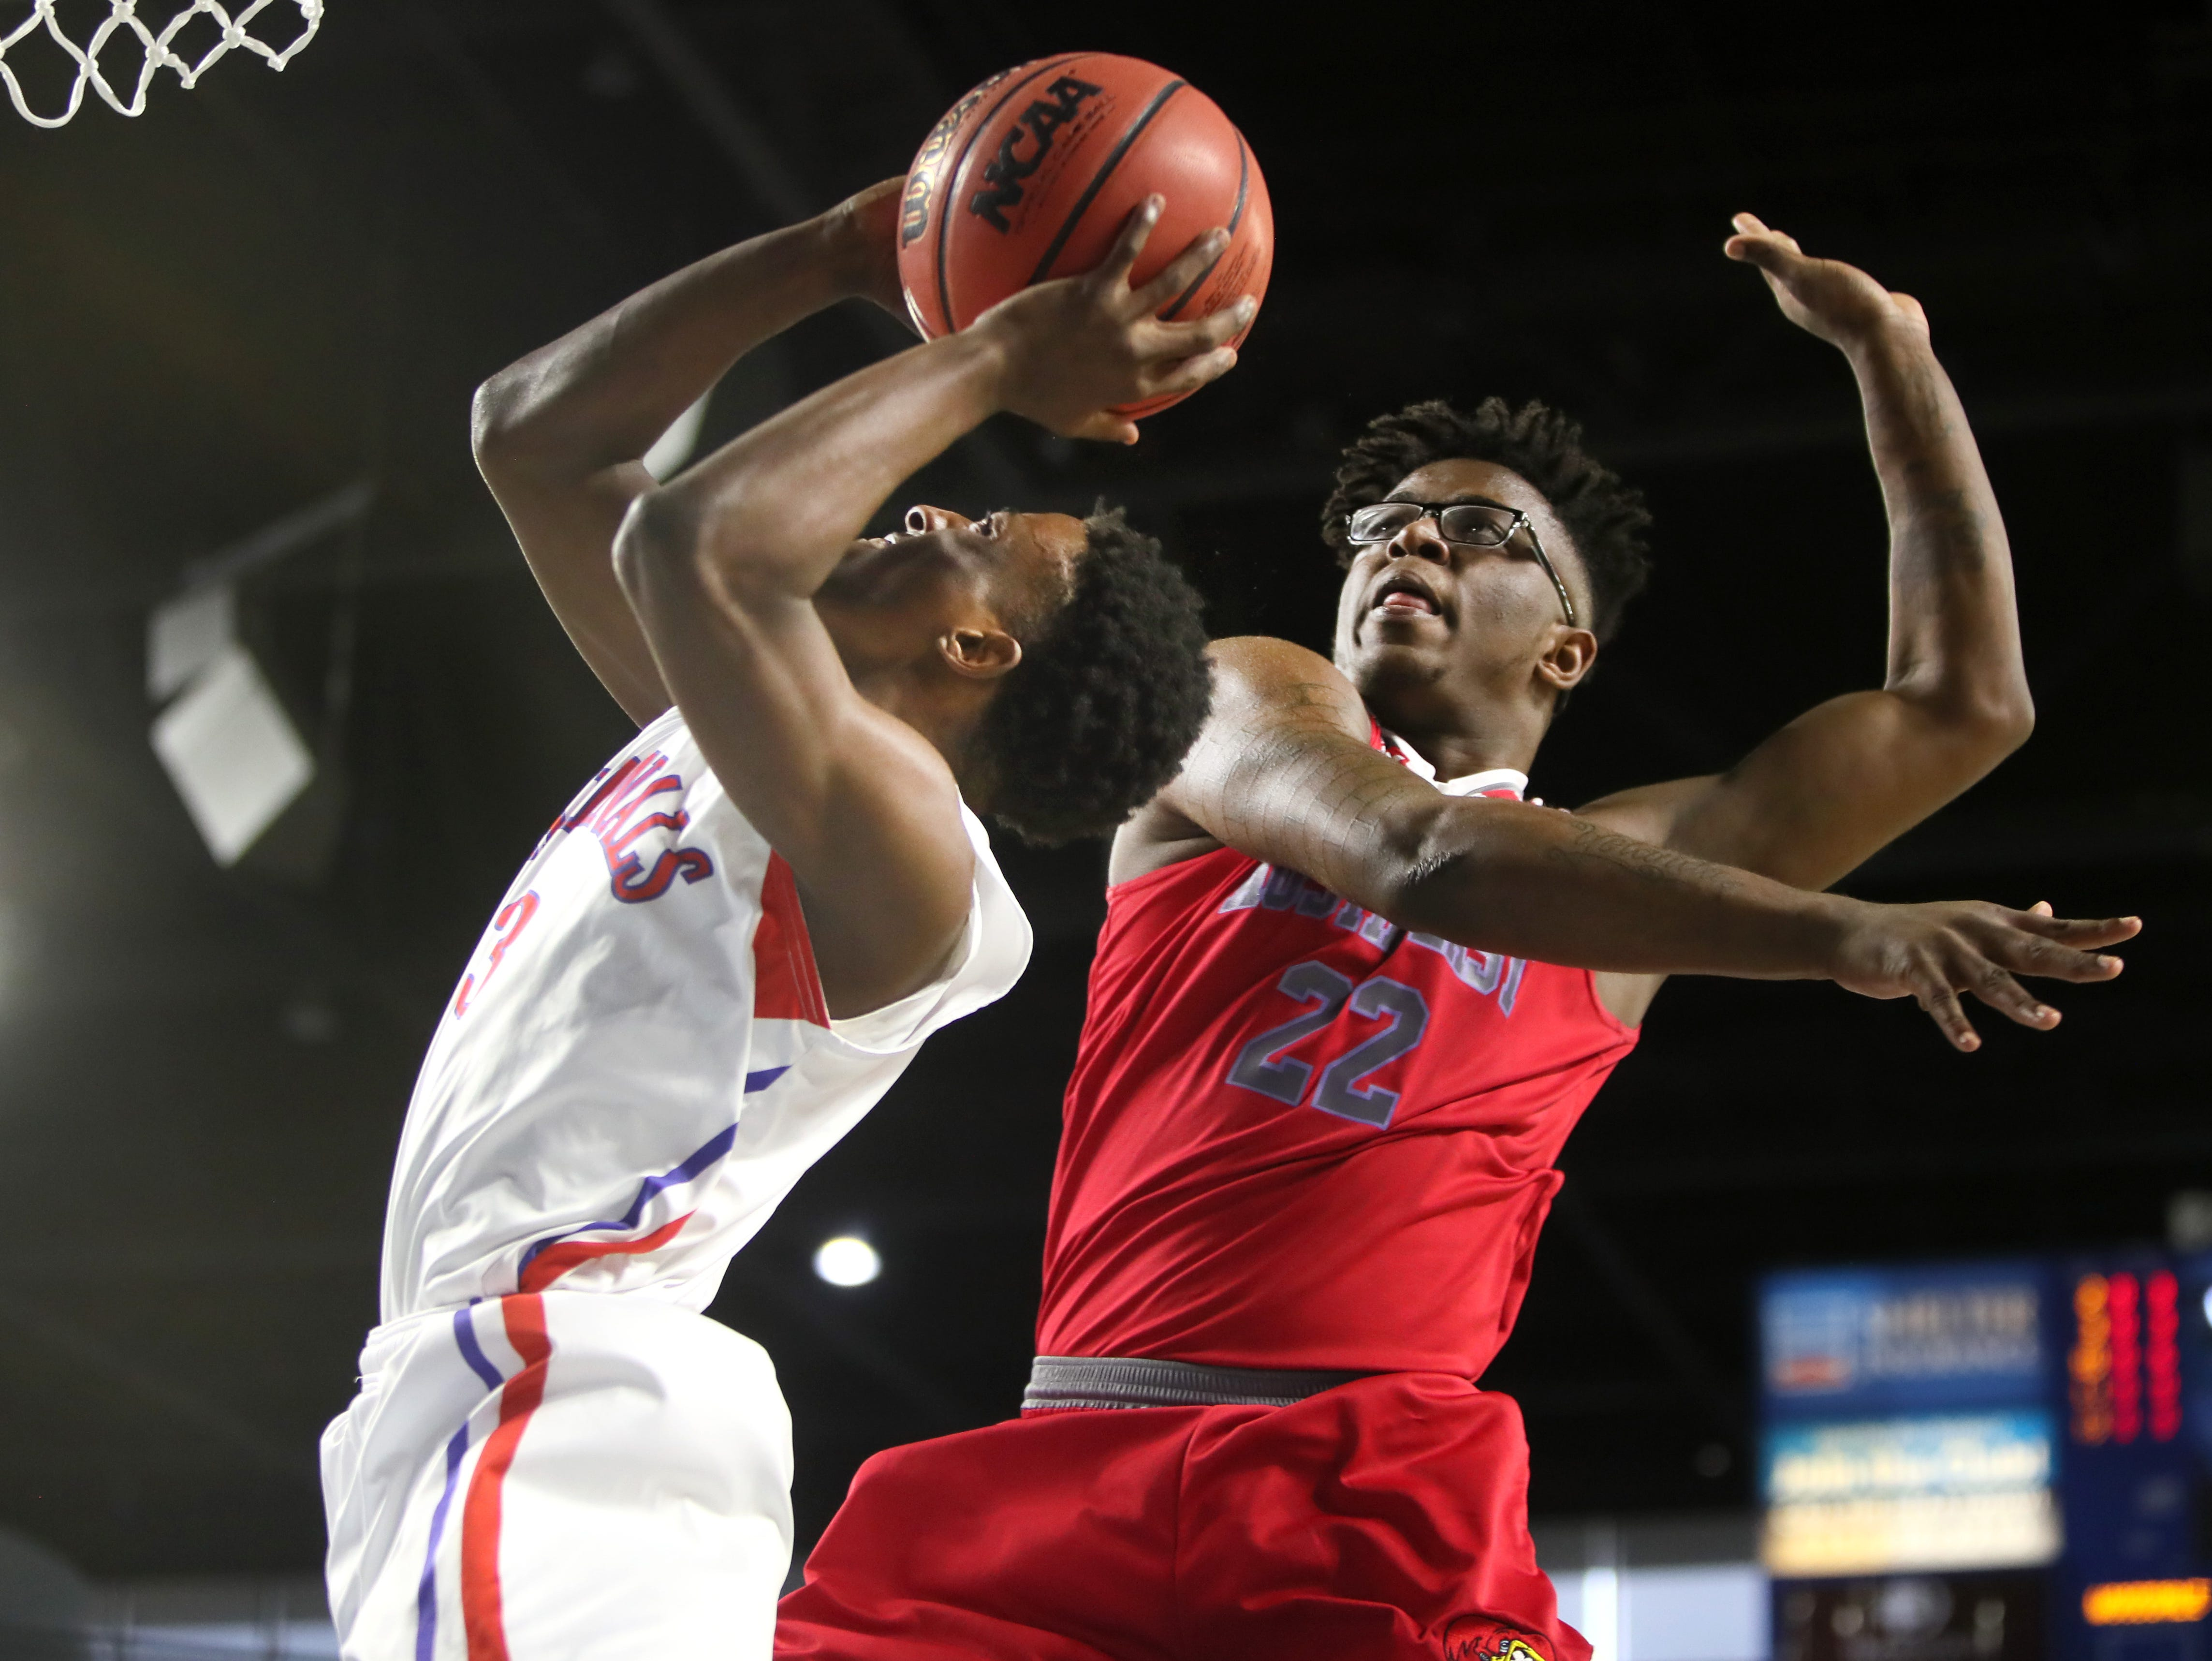 Wooddale's Alvin Miles shoots the ball over Austin-East's Dereke Upton during the TSSAA Division I basketball state tournament in Murfreesboro on Wednesday, March 13, 2019.